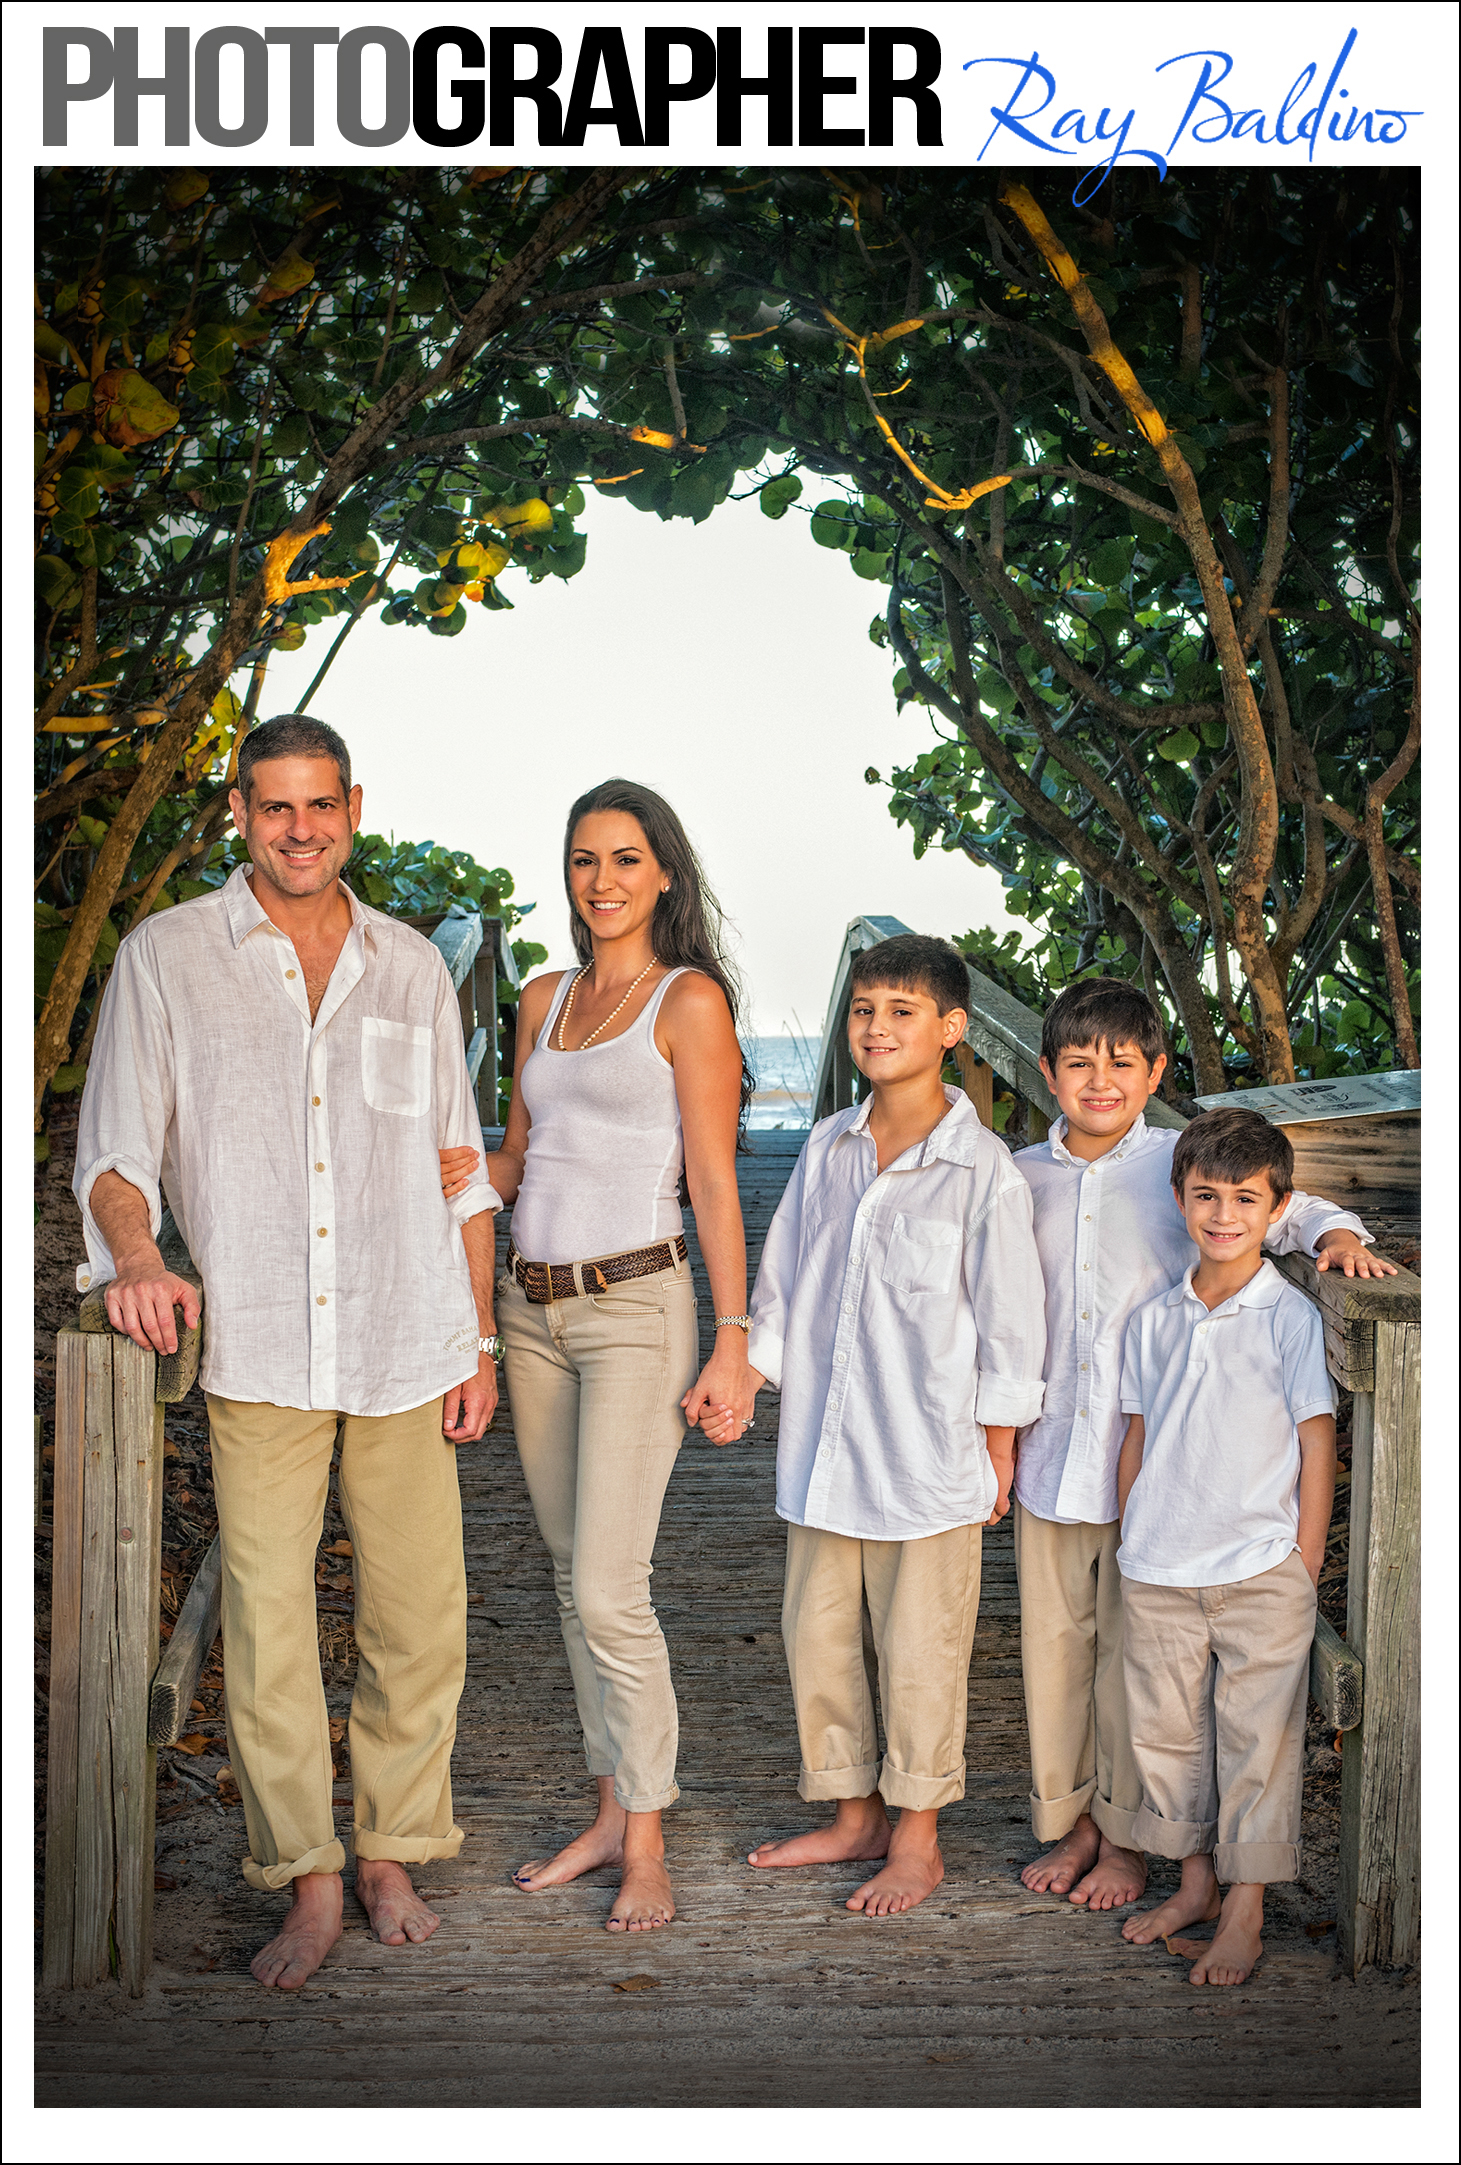 family-beach-photography-by-ray-baldino-in-cocoa-beach-florida-this-image-is-a-picture-of-a-family-with-their-children-standing-in-front-of-the-entrance-to-the-beach